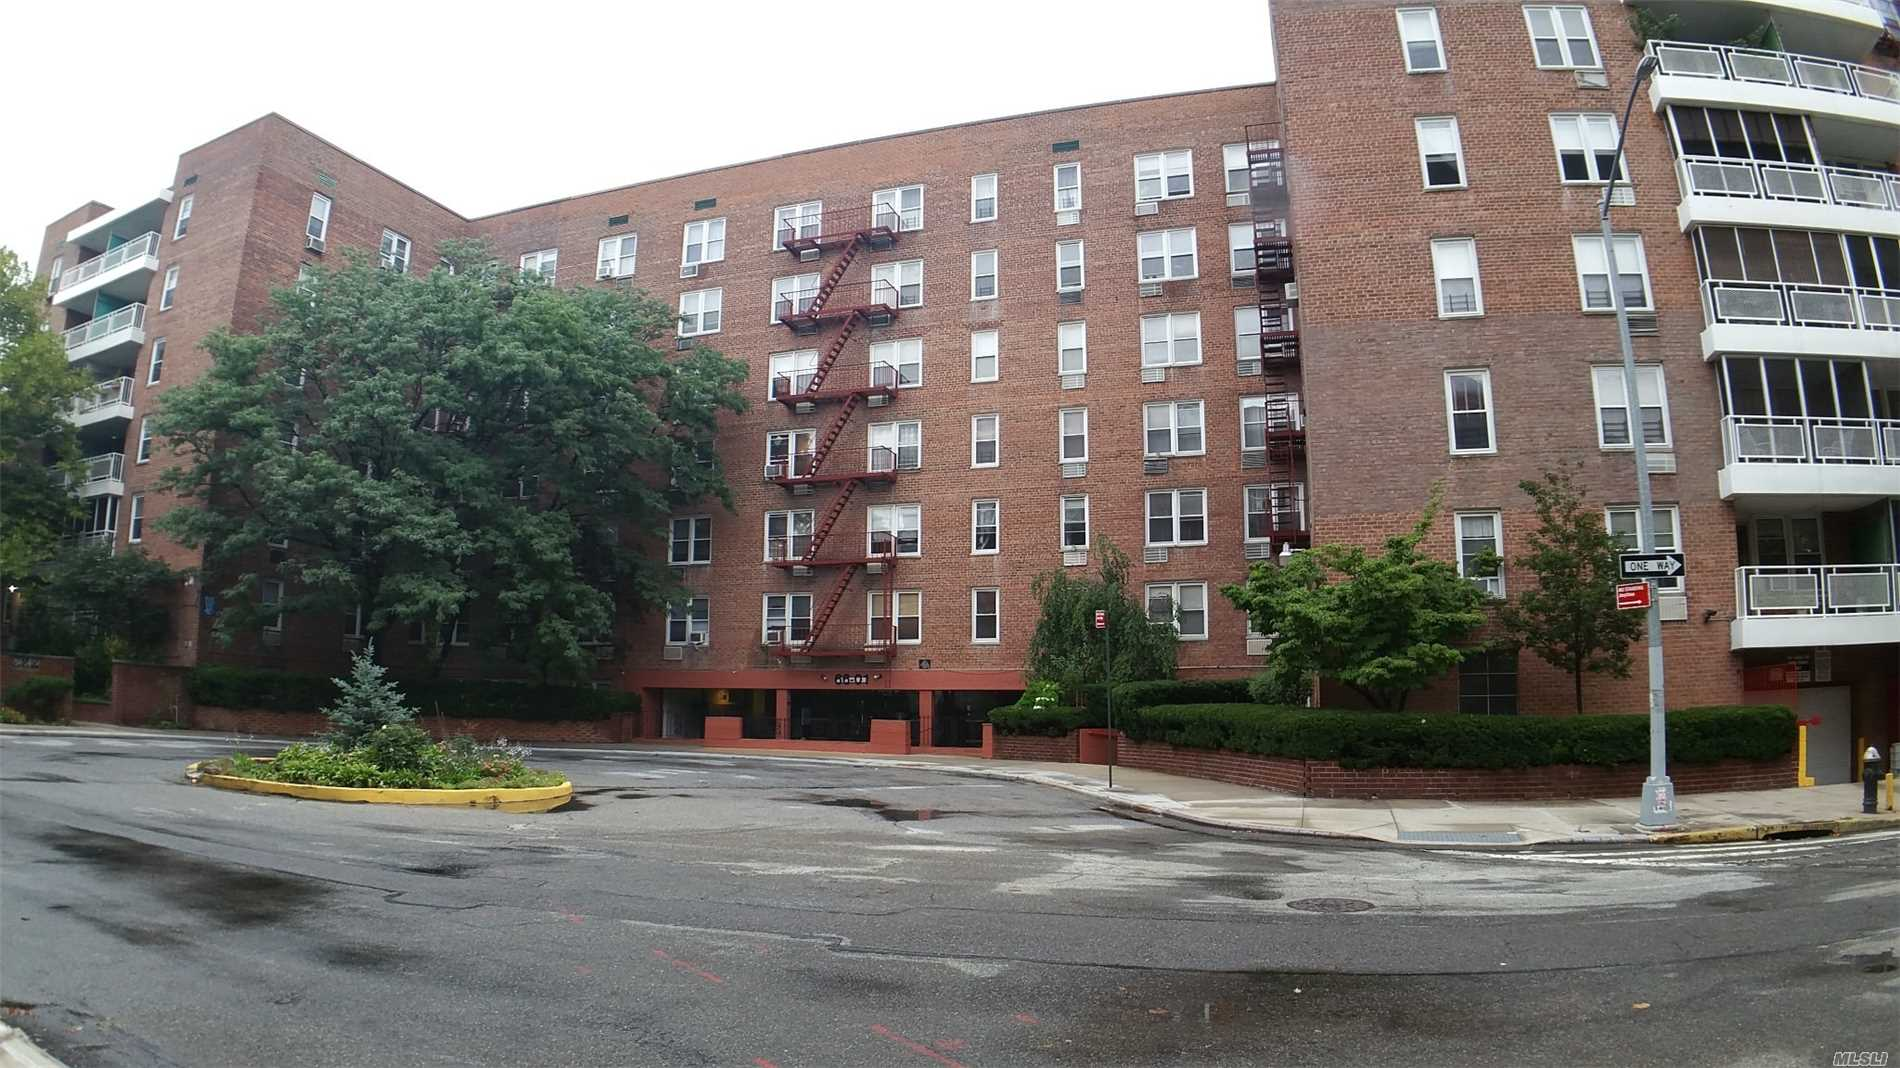 Large 1Br Co-Op On Cul Da-Sac On 4th Floor In Well Maintained Elevator Building With On Site Laundry Room And Parking Garage.Minutes To 67 Ave Subways & Lirr & Forest Hills Stadium. No Flip Tax & Cat Friendly With Low ($581)Maintenance. All Rooms With Windows Facing Rare Of Building.